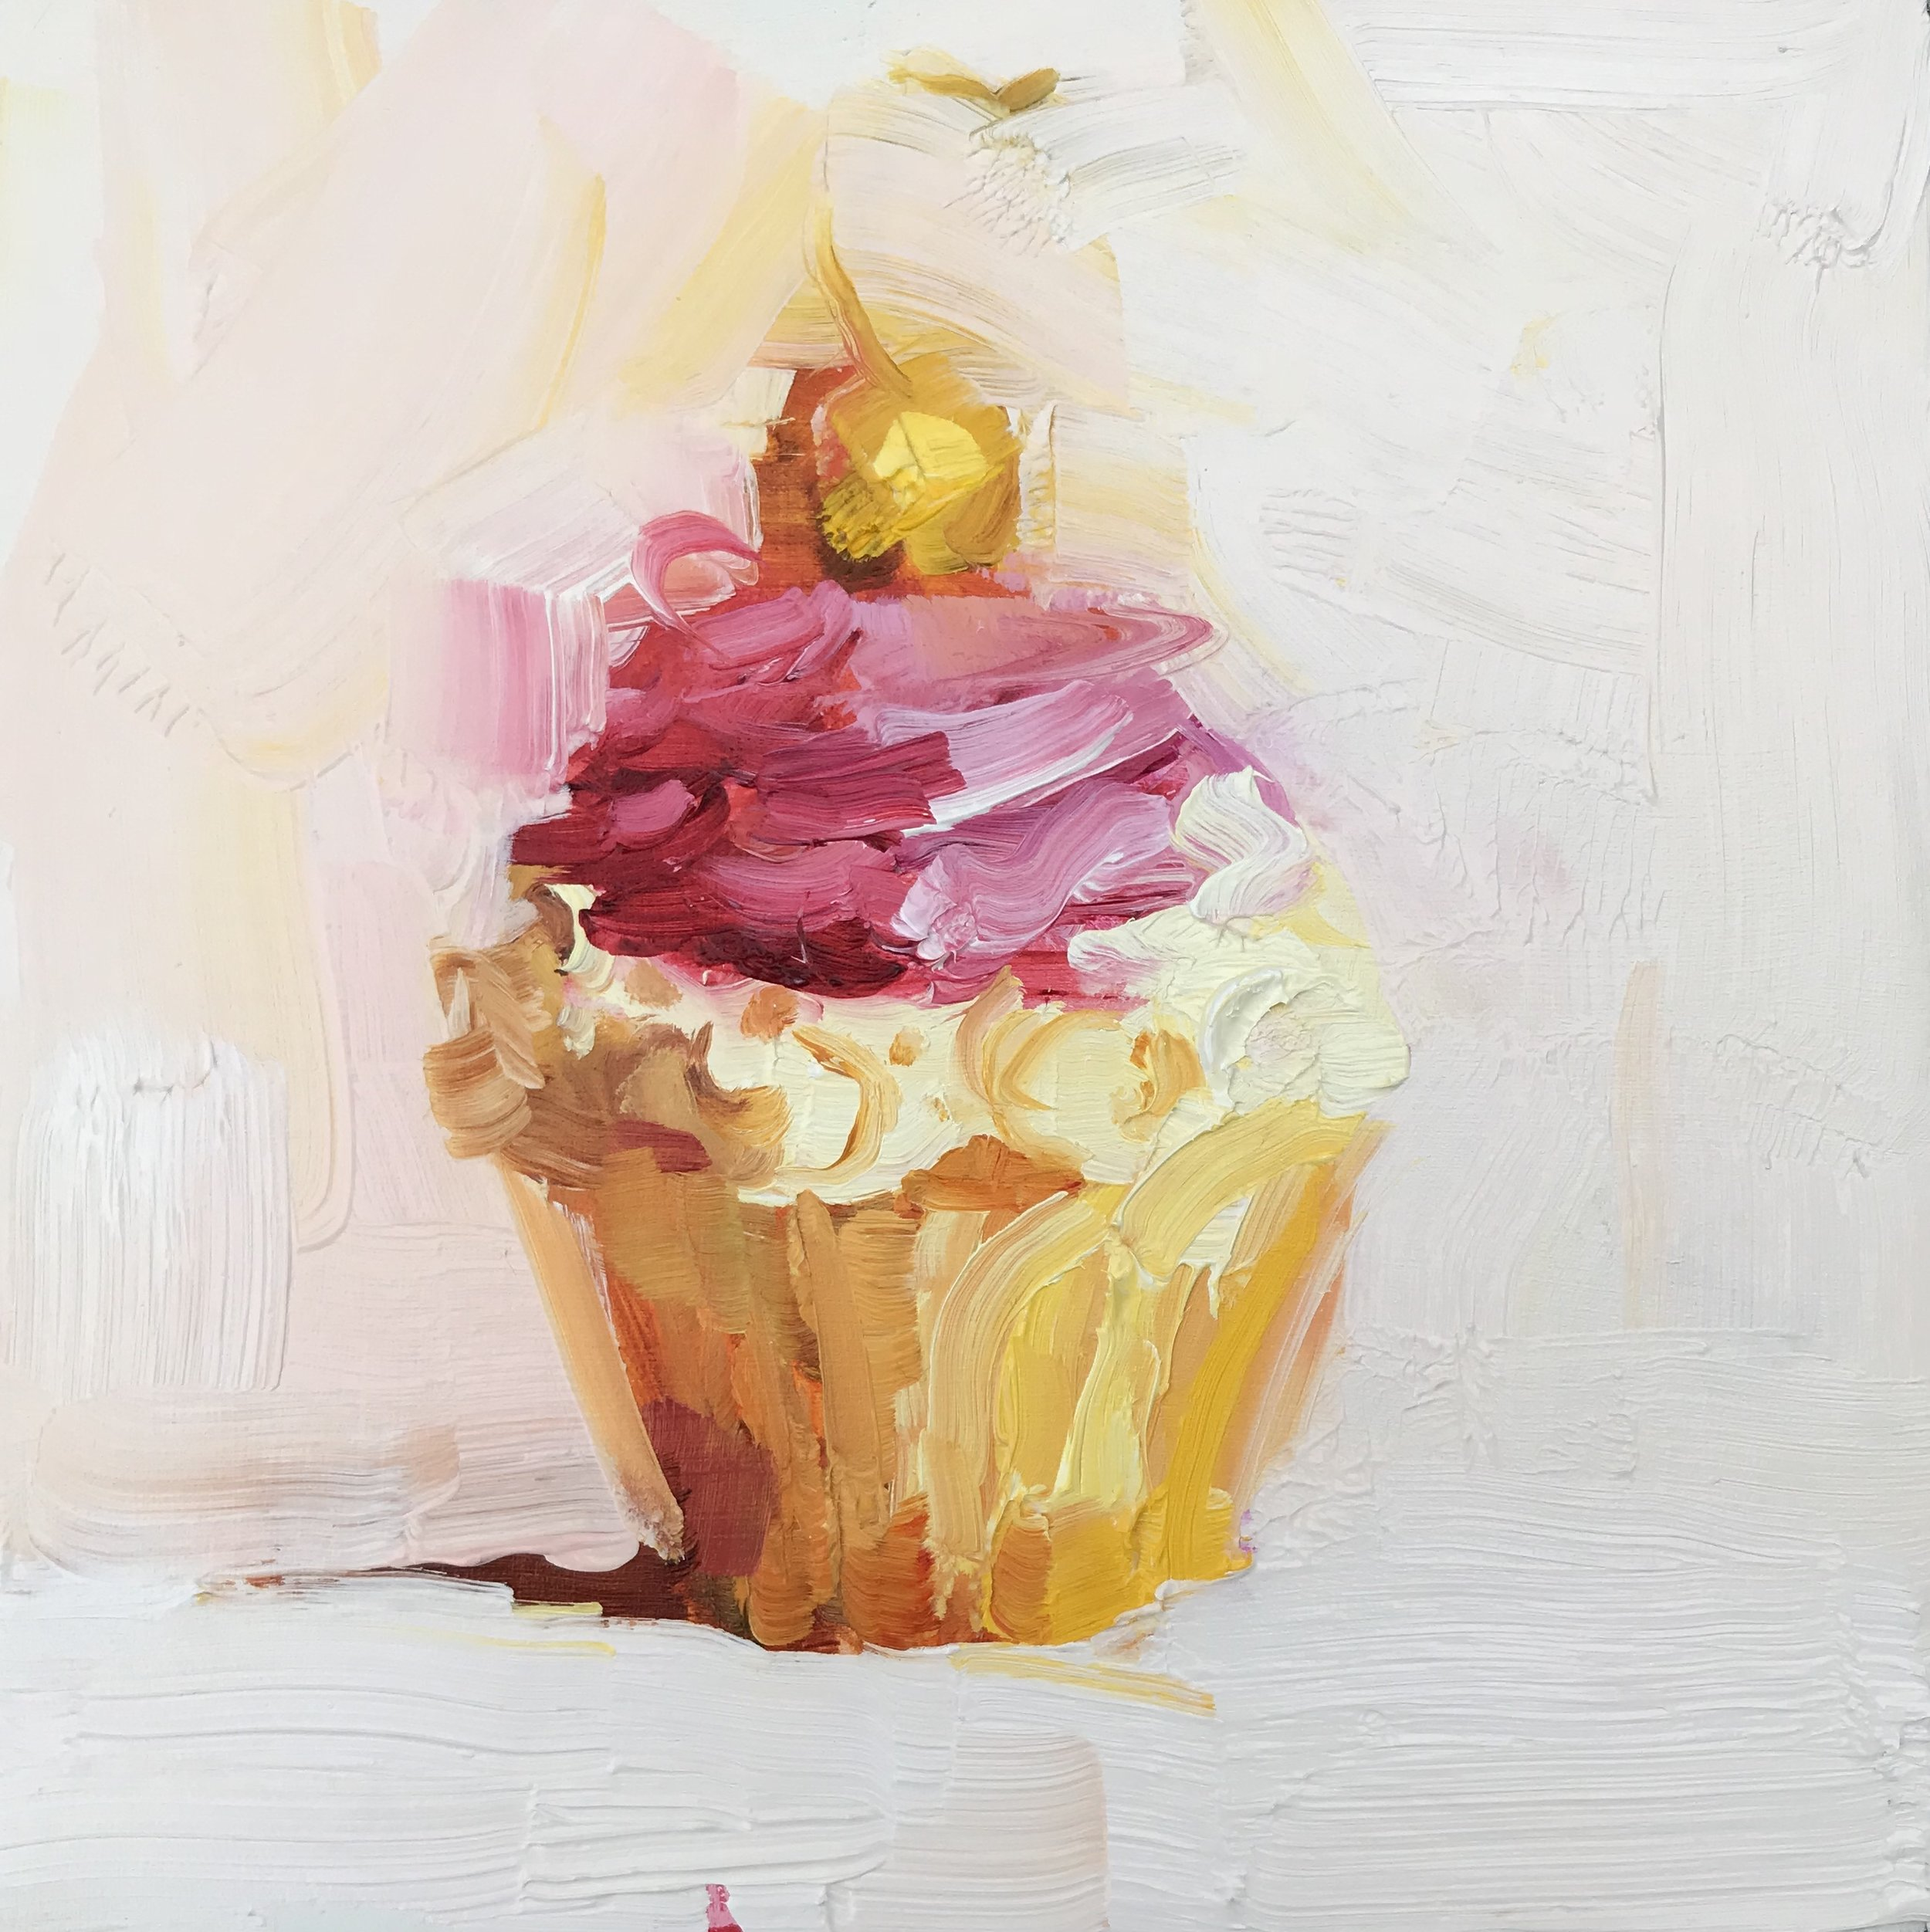 Golden Cherry Cupcake